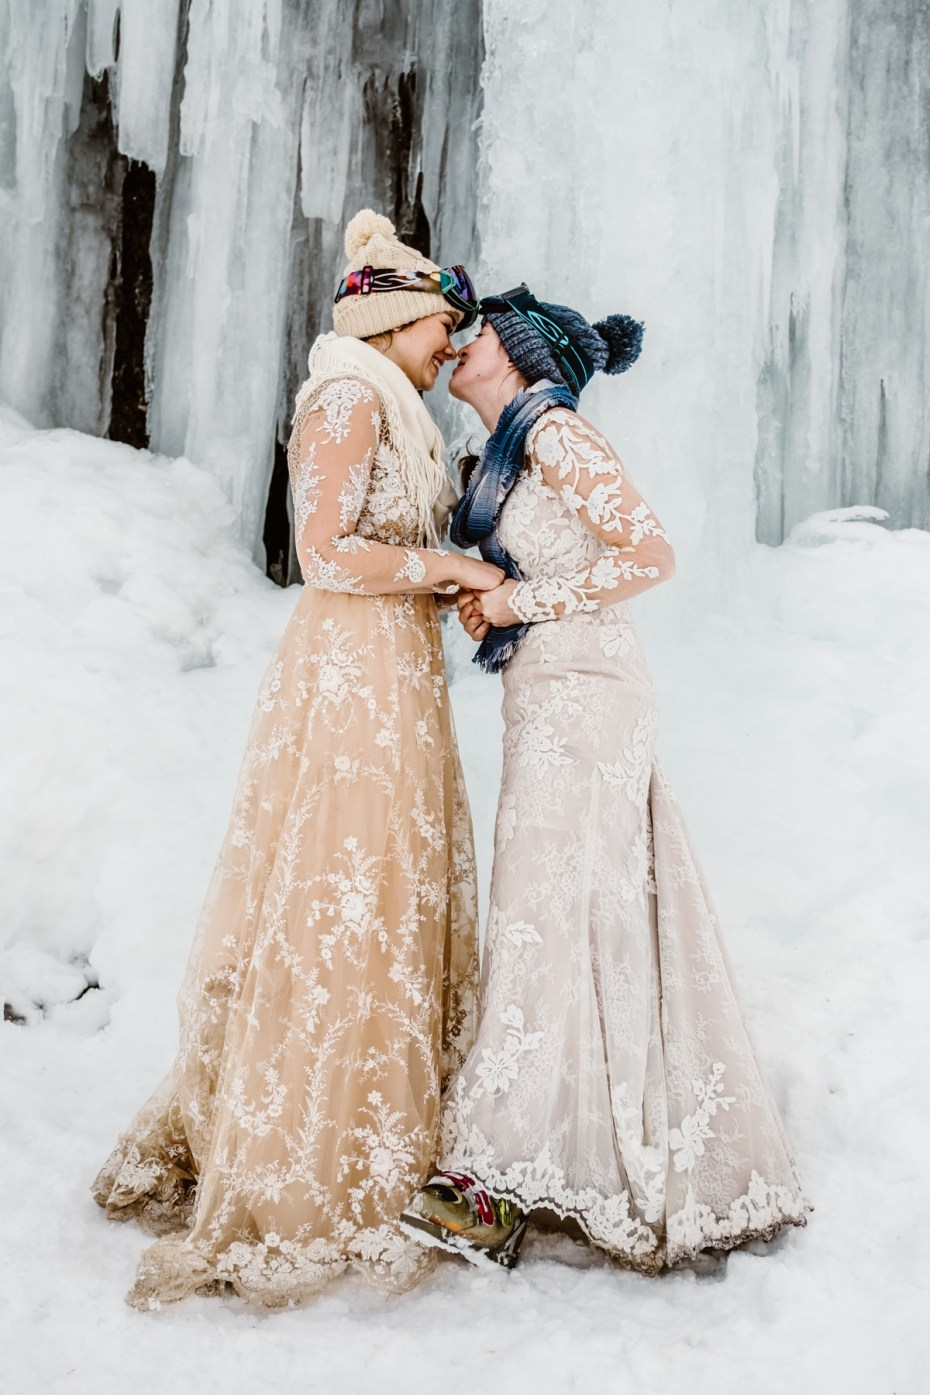 Two brides kiss under a frozen waterfall in Tirol in the Austrian Alps by Wild Connections Photography